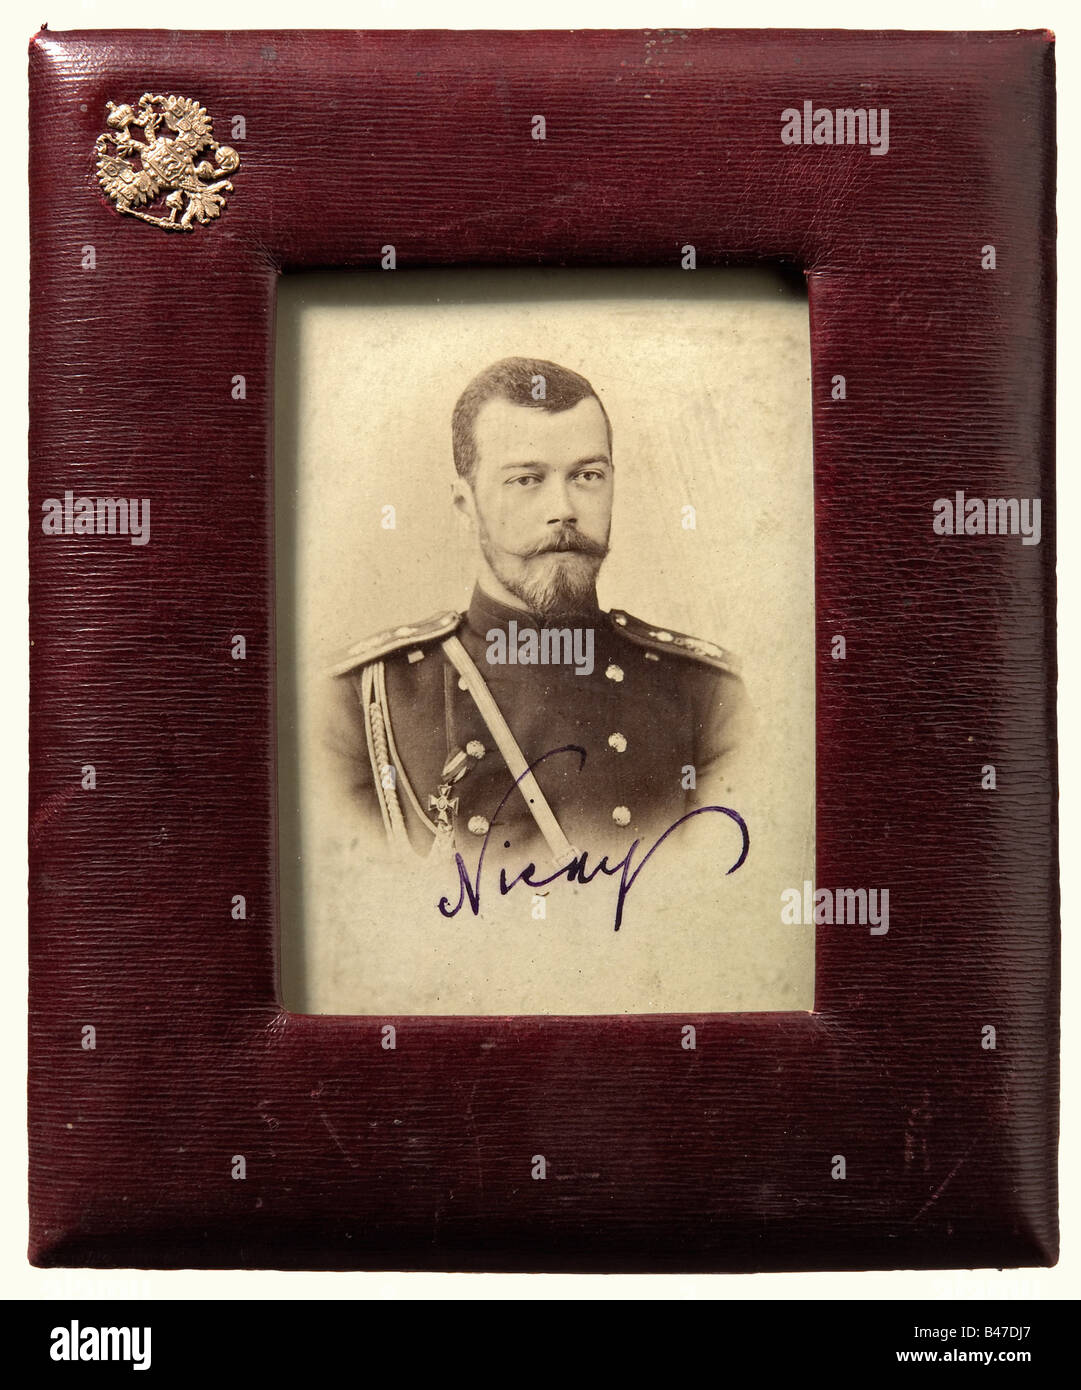 Tsar Nicholas II - a photograph, With autograph signature. In a leather-covered display frame, under glass, in the - Stock Image